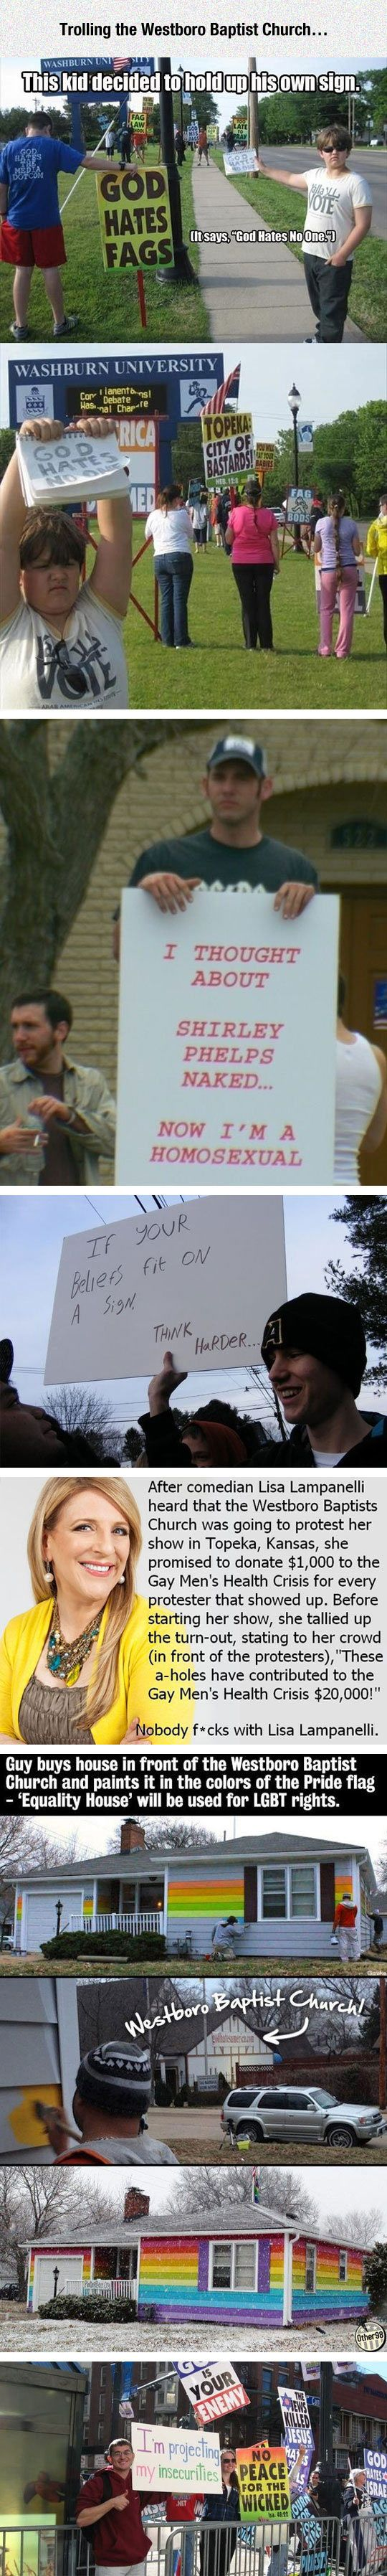 I especially like the if your beliefs fit on a sign, then your beliefs are wrong --Dealing With Westboro Baptist Church